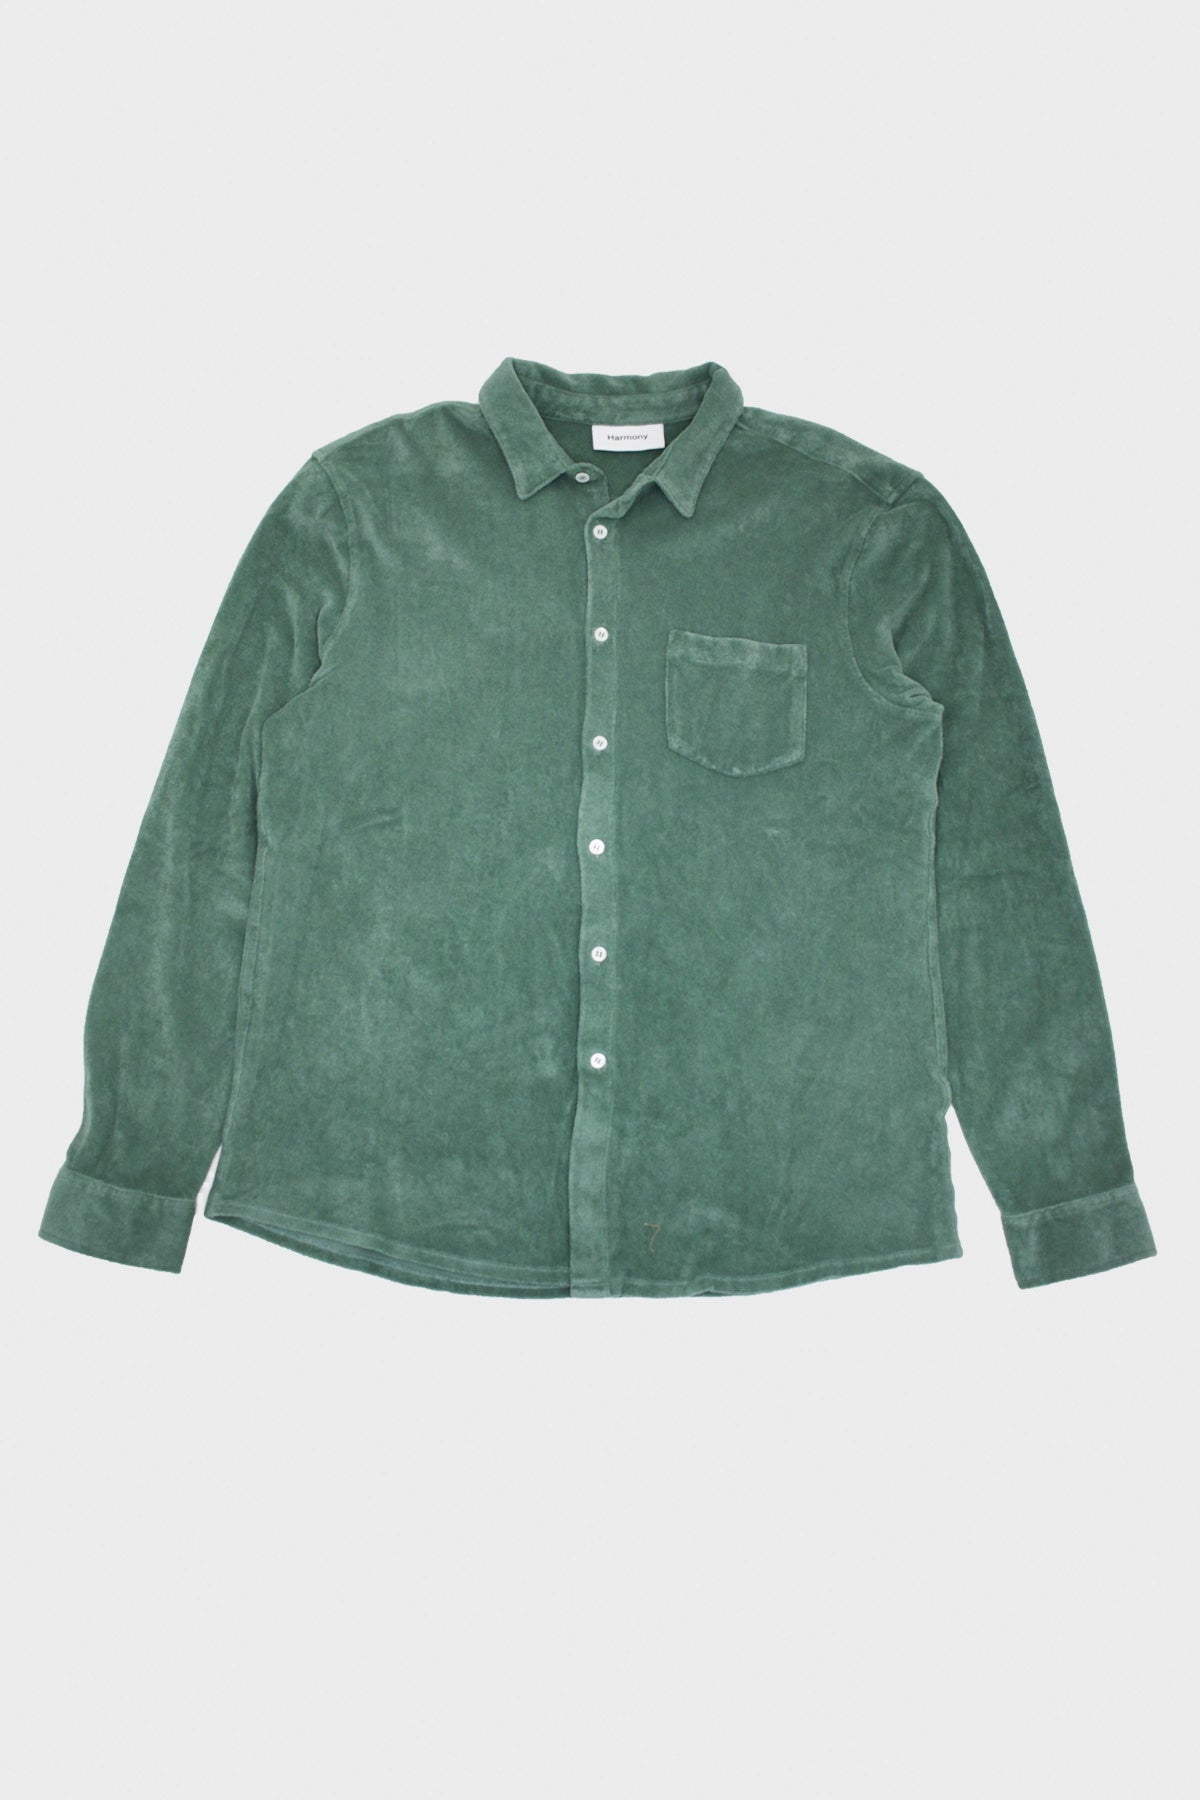 Harmony - Caleb Shirt - Mint - Canoe Club